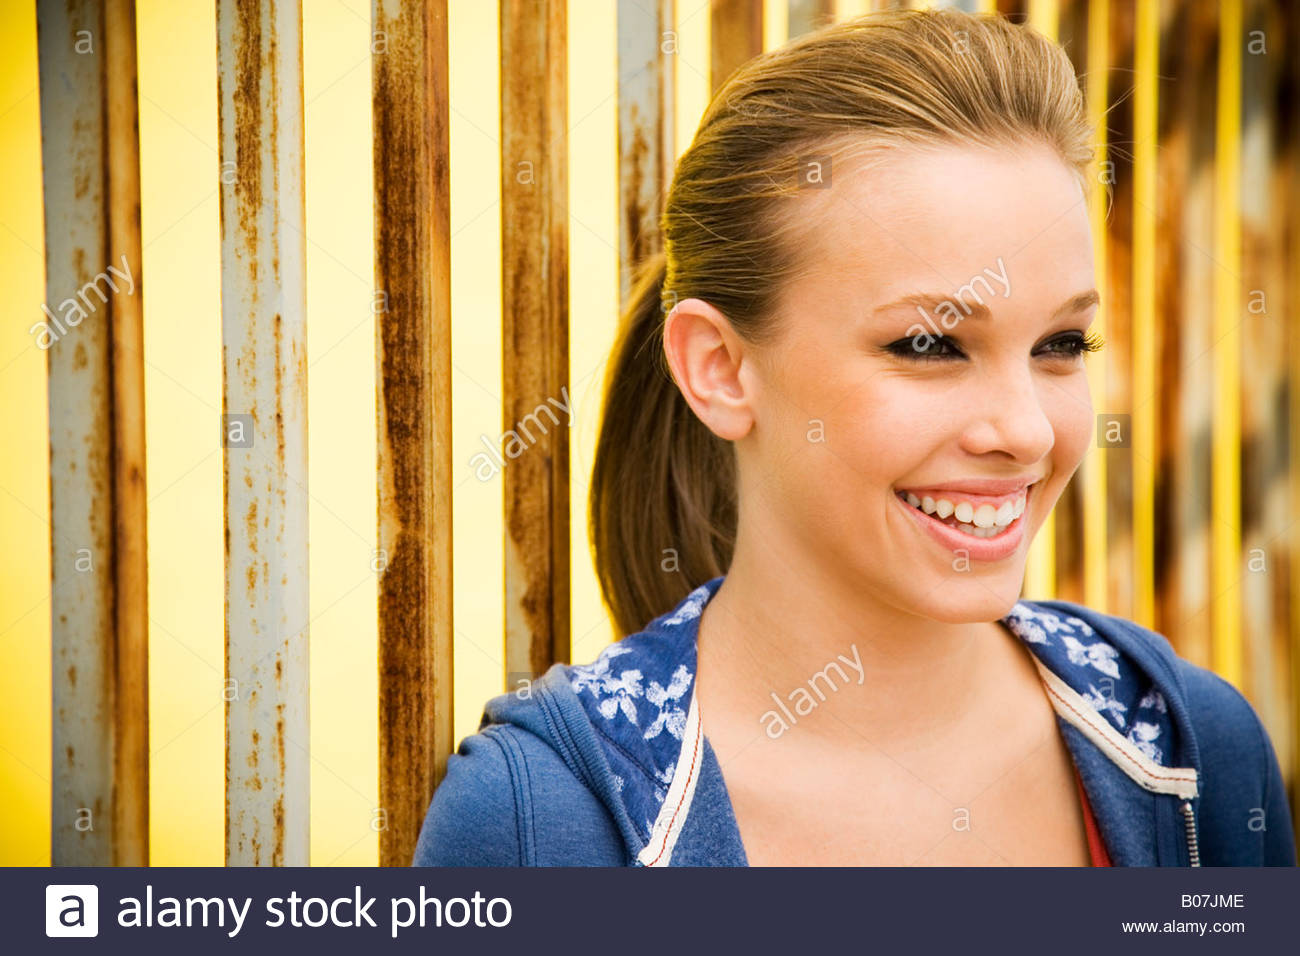 Portrait of a girl leaning against railing bars - Stock Image